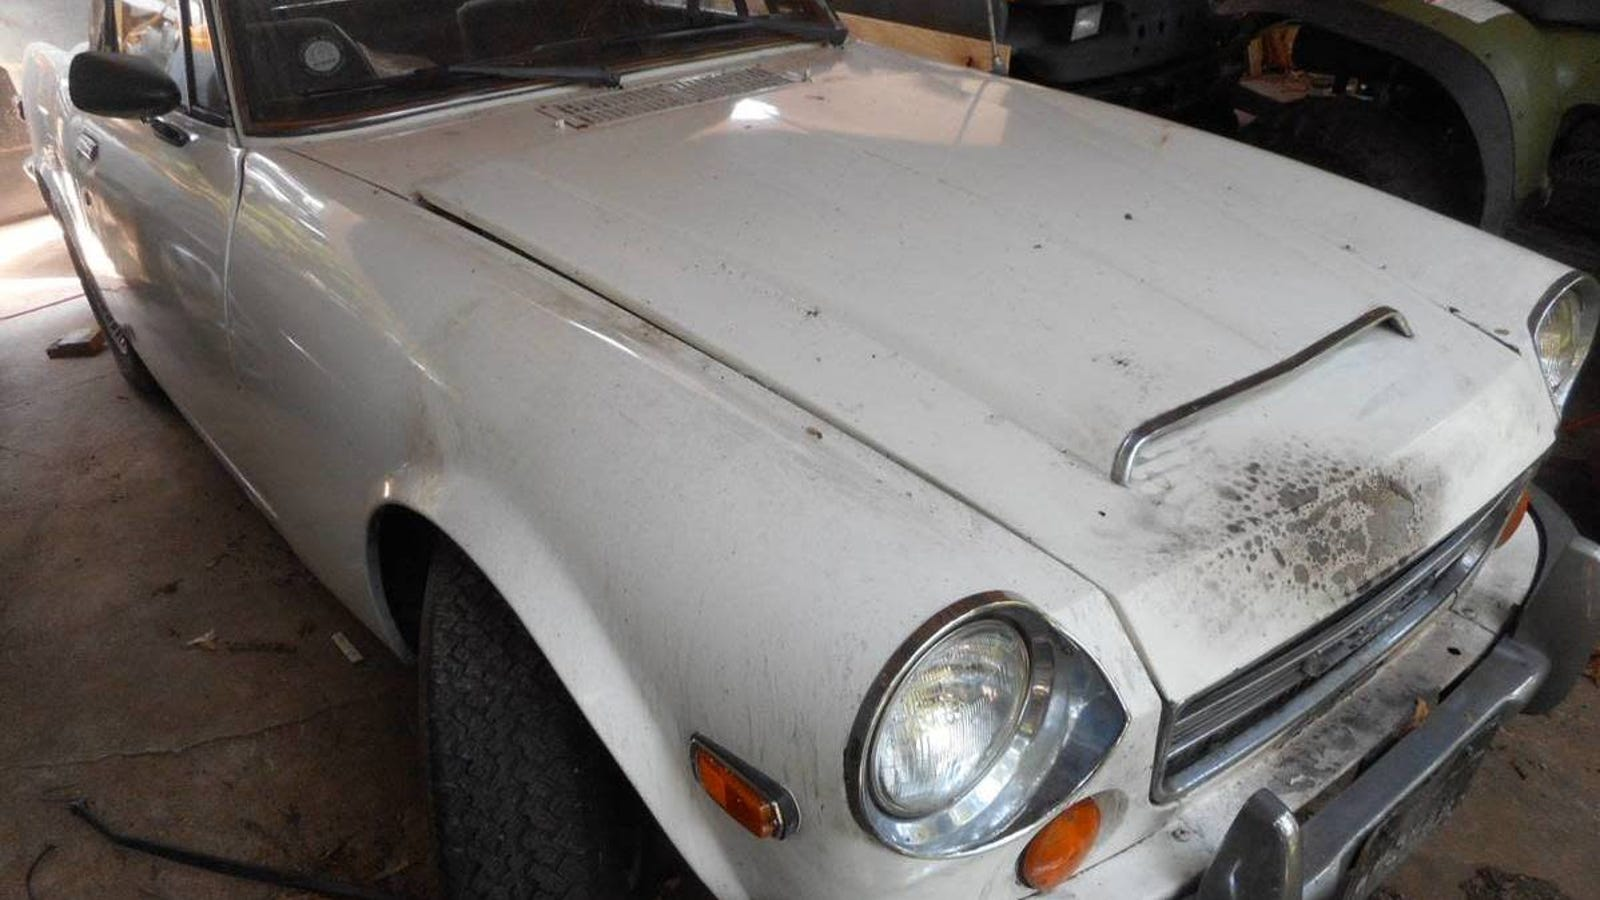 At $3,600, Could This 1970 Datsun Fairlady 2000 Project Prove a Fair Deal?